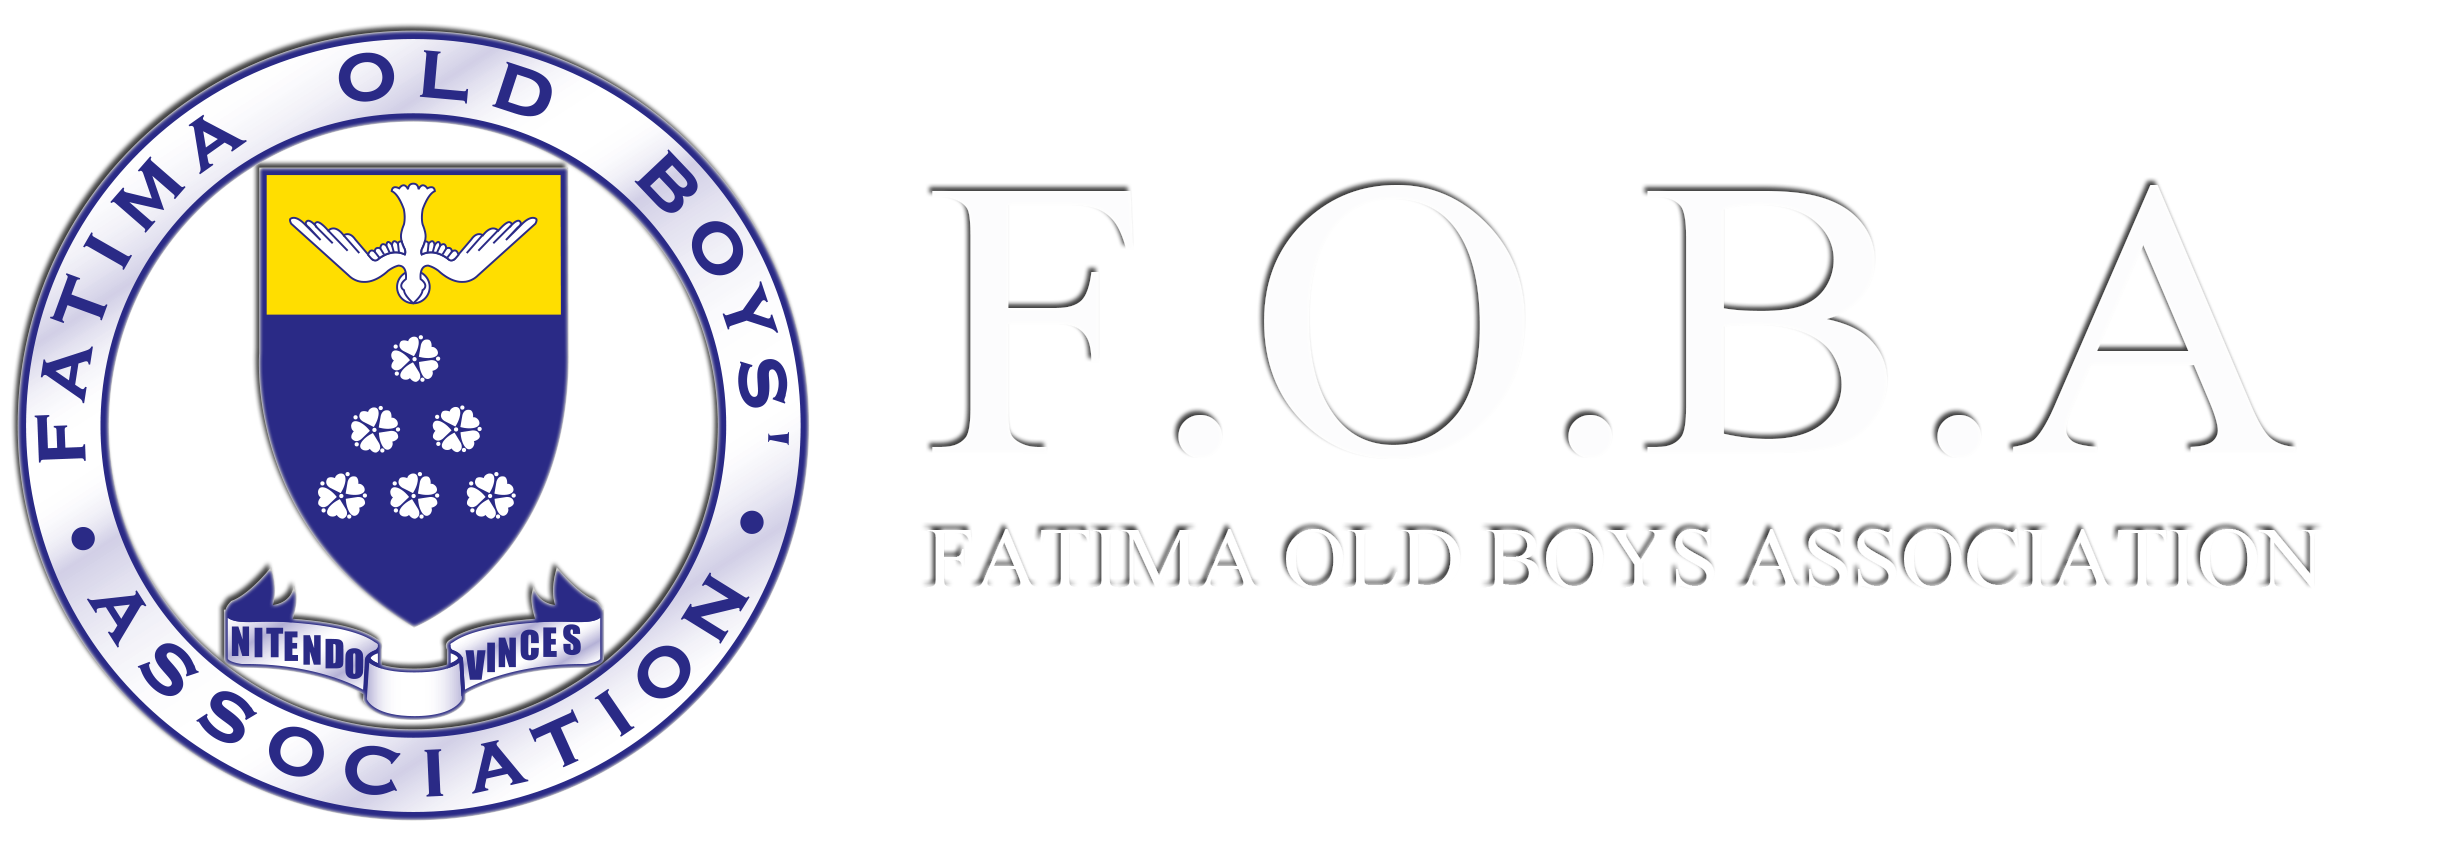 Fatima Old Boys Association